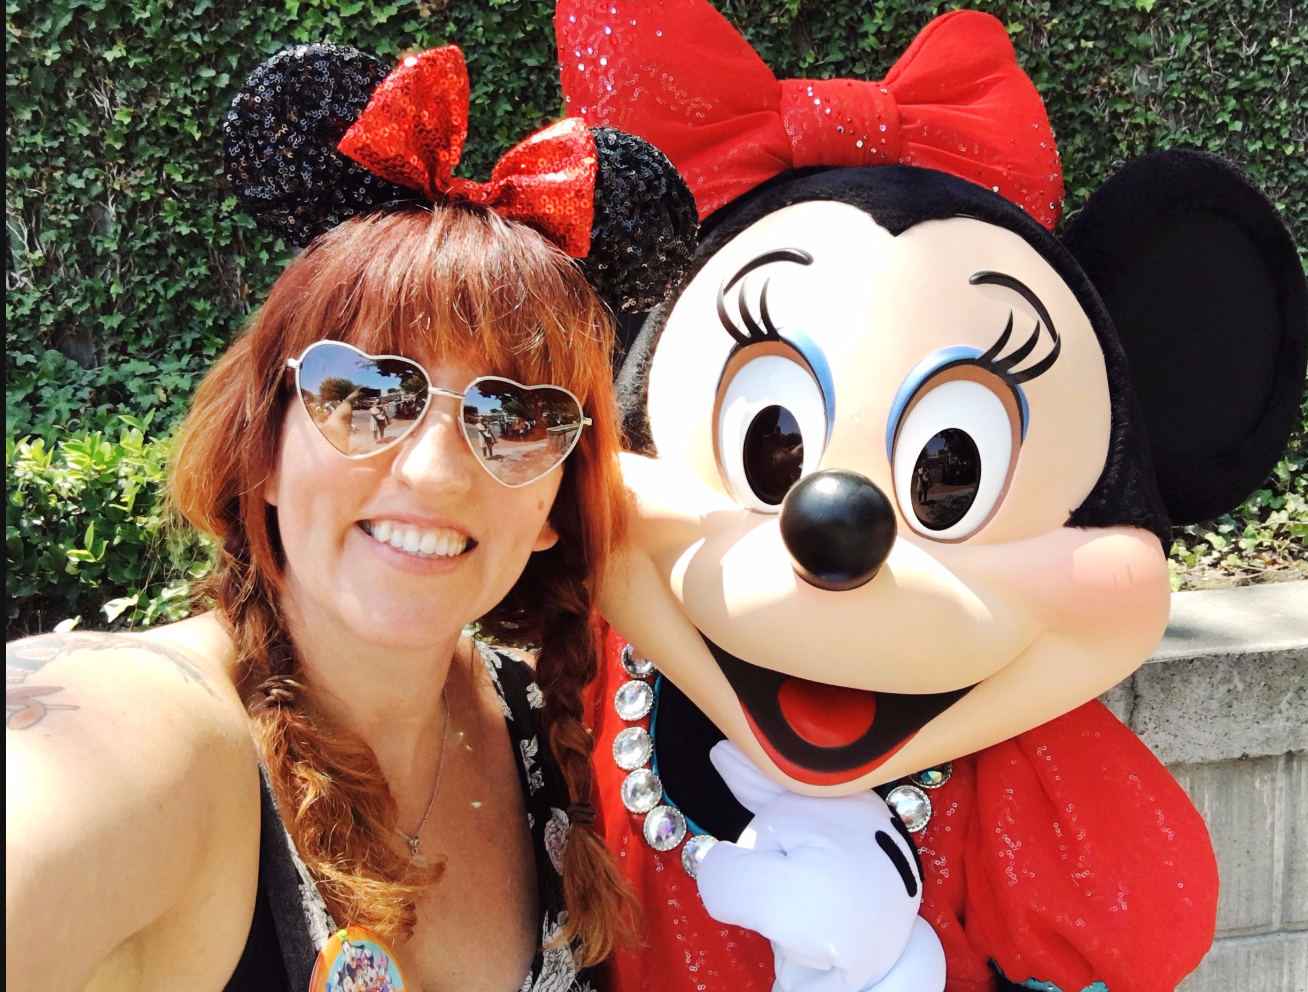 minnie mouse from disneyland